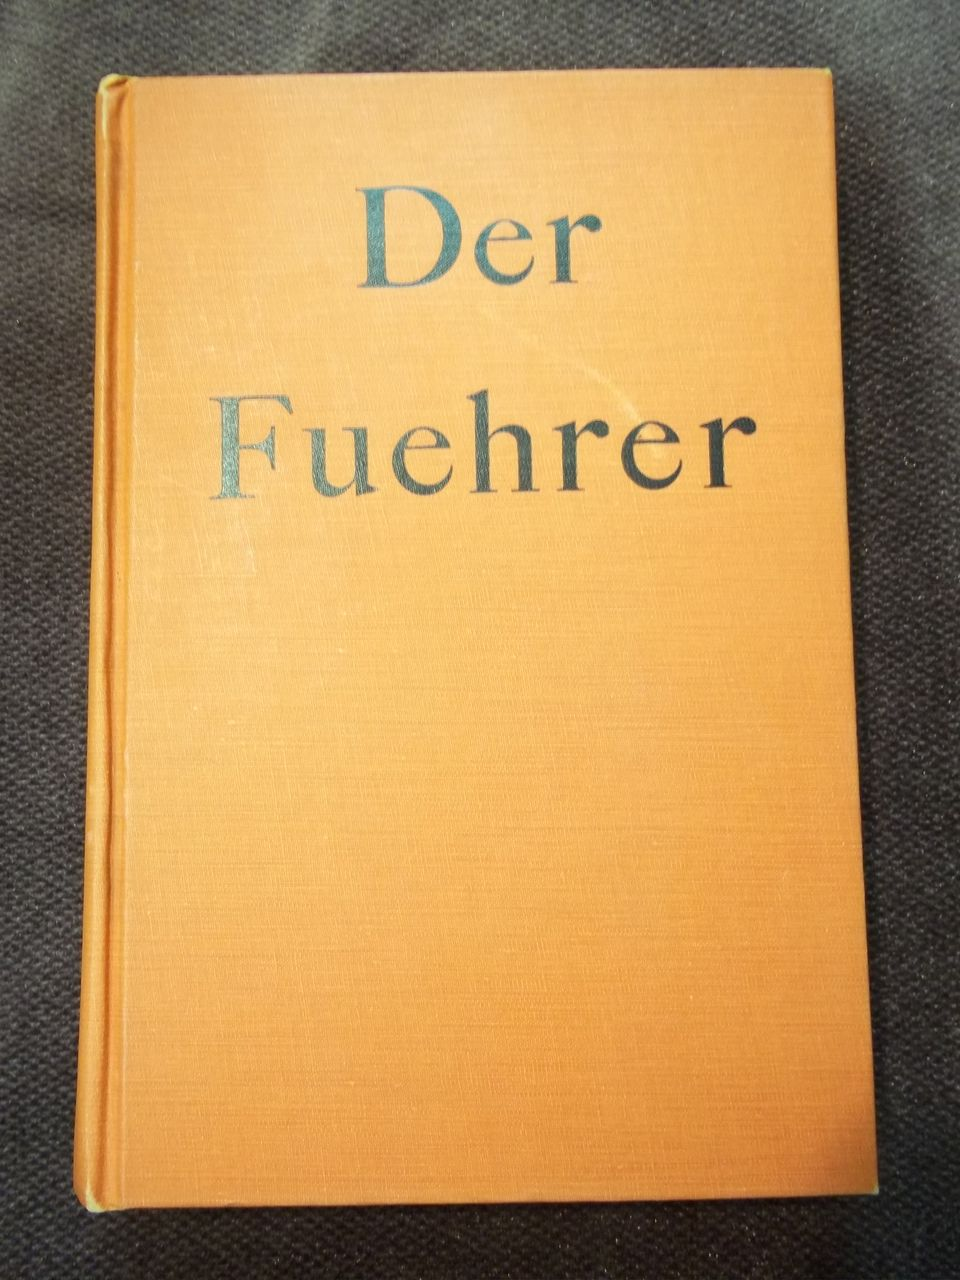 Der Fuehrer: Hitler's Rise to Power, Konrad Heiden, Houghton Mifflin Co. 1944